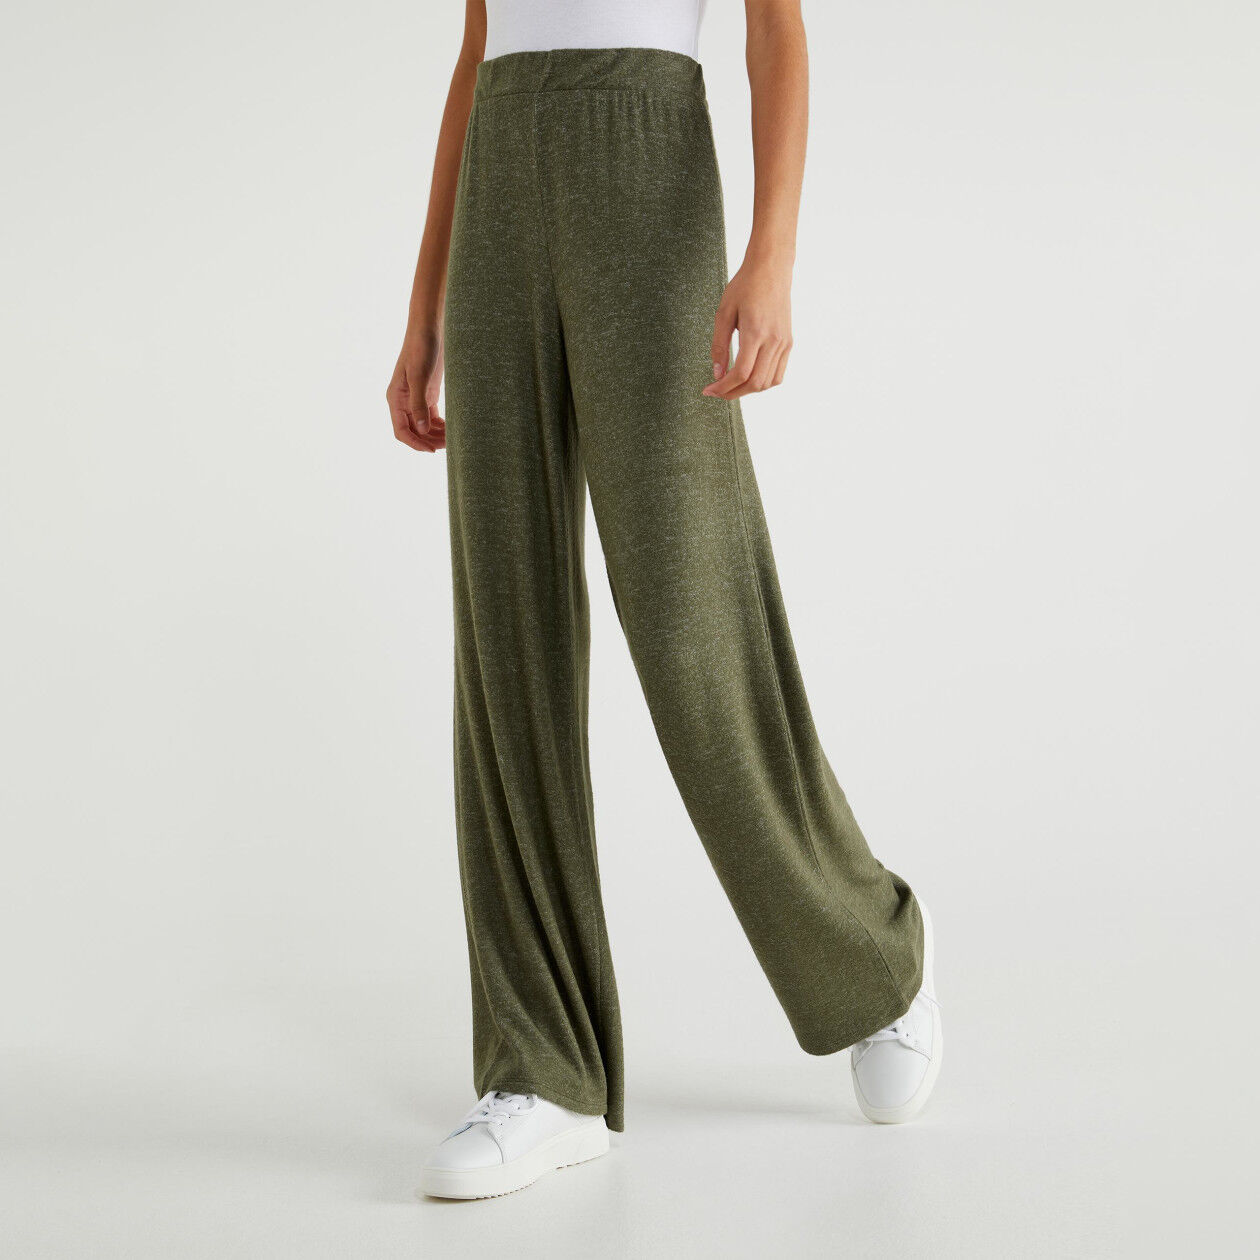 Jersey trousers